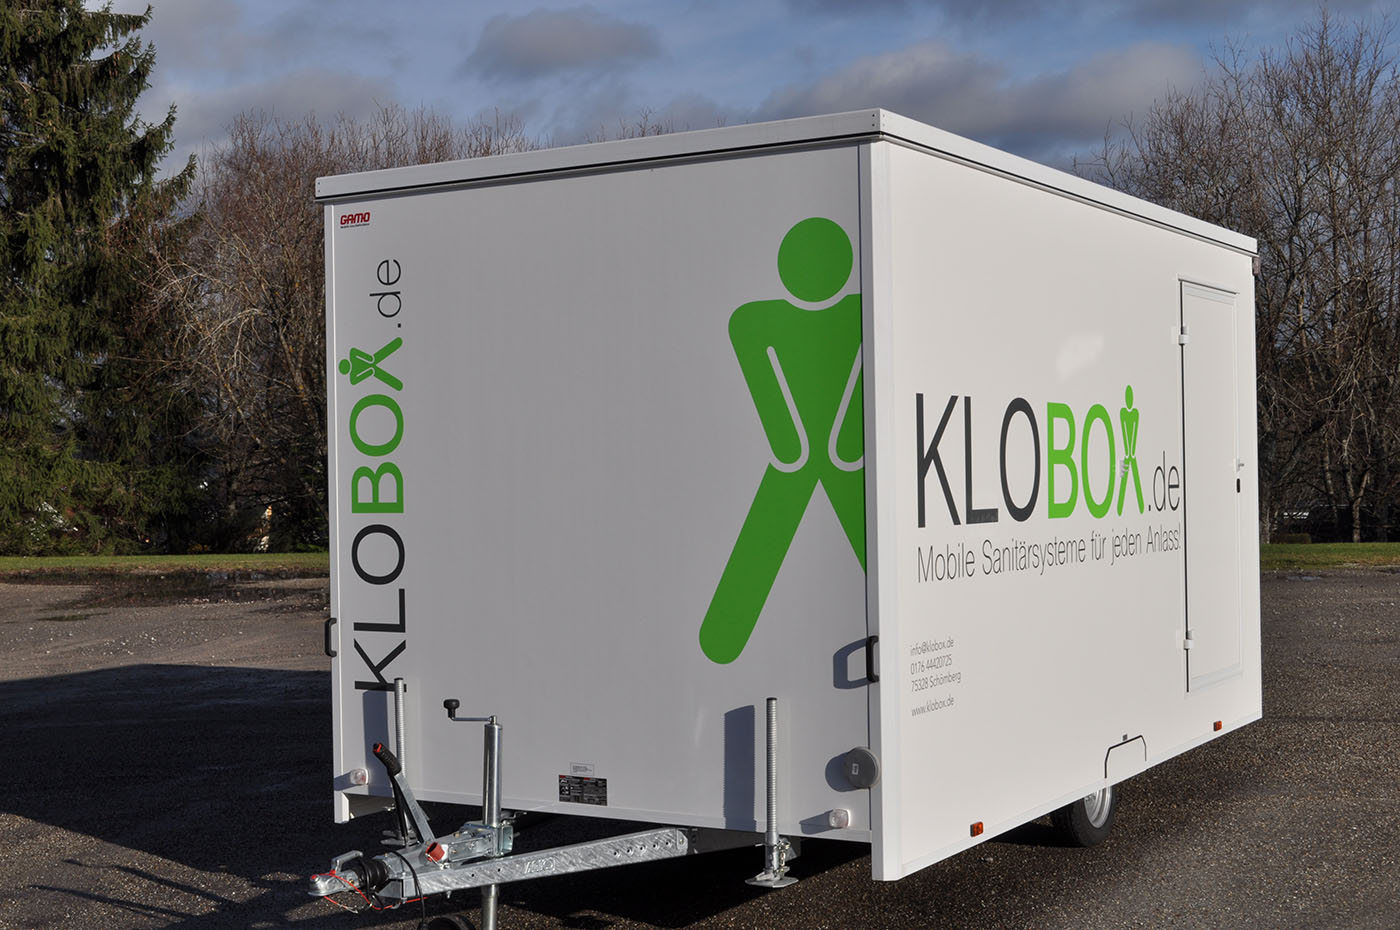 Toilettenwagen - klobox.de #10